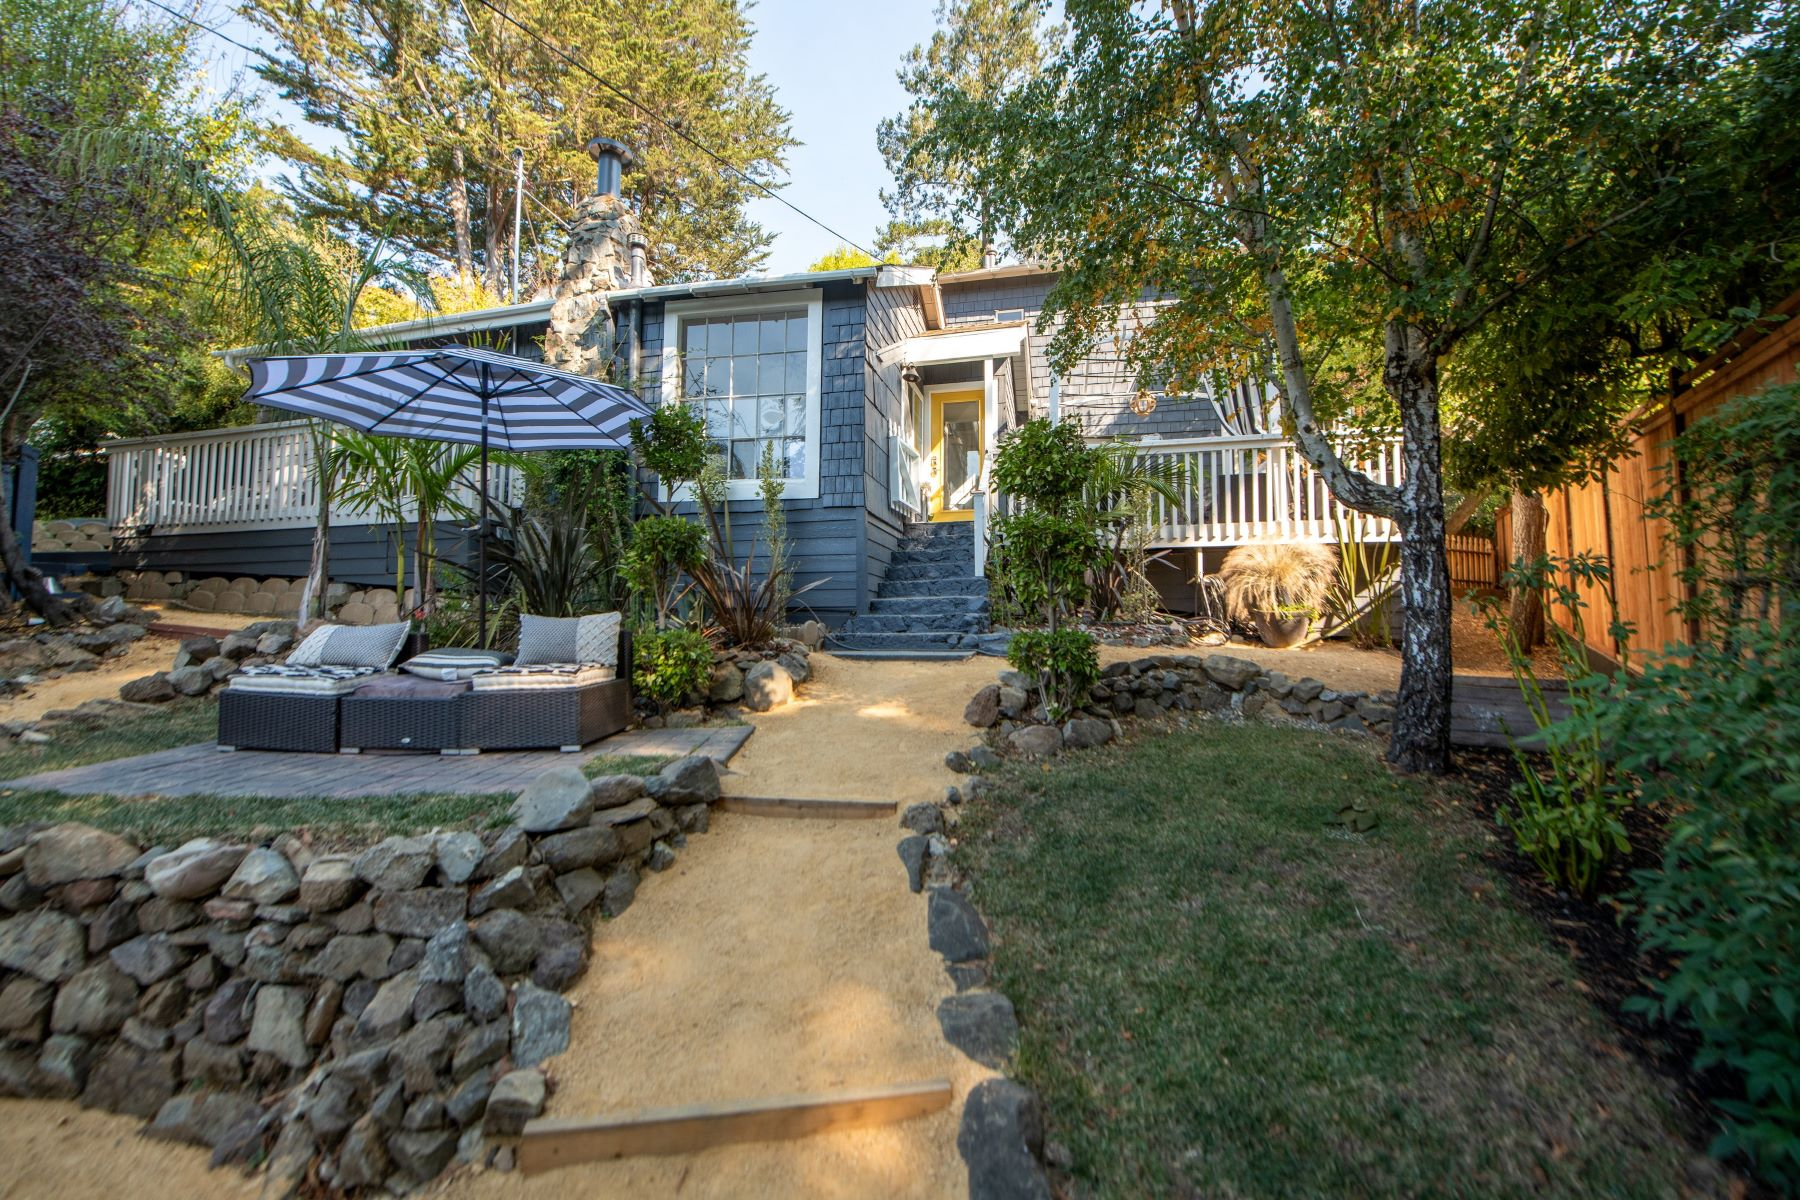 Single Family Homes for Sale at Quintessential Mill Valley Cottage 506 Throckmorton Ave Mill Valley, California 94941 United States